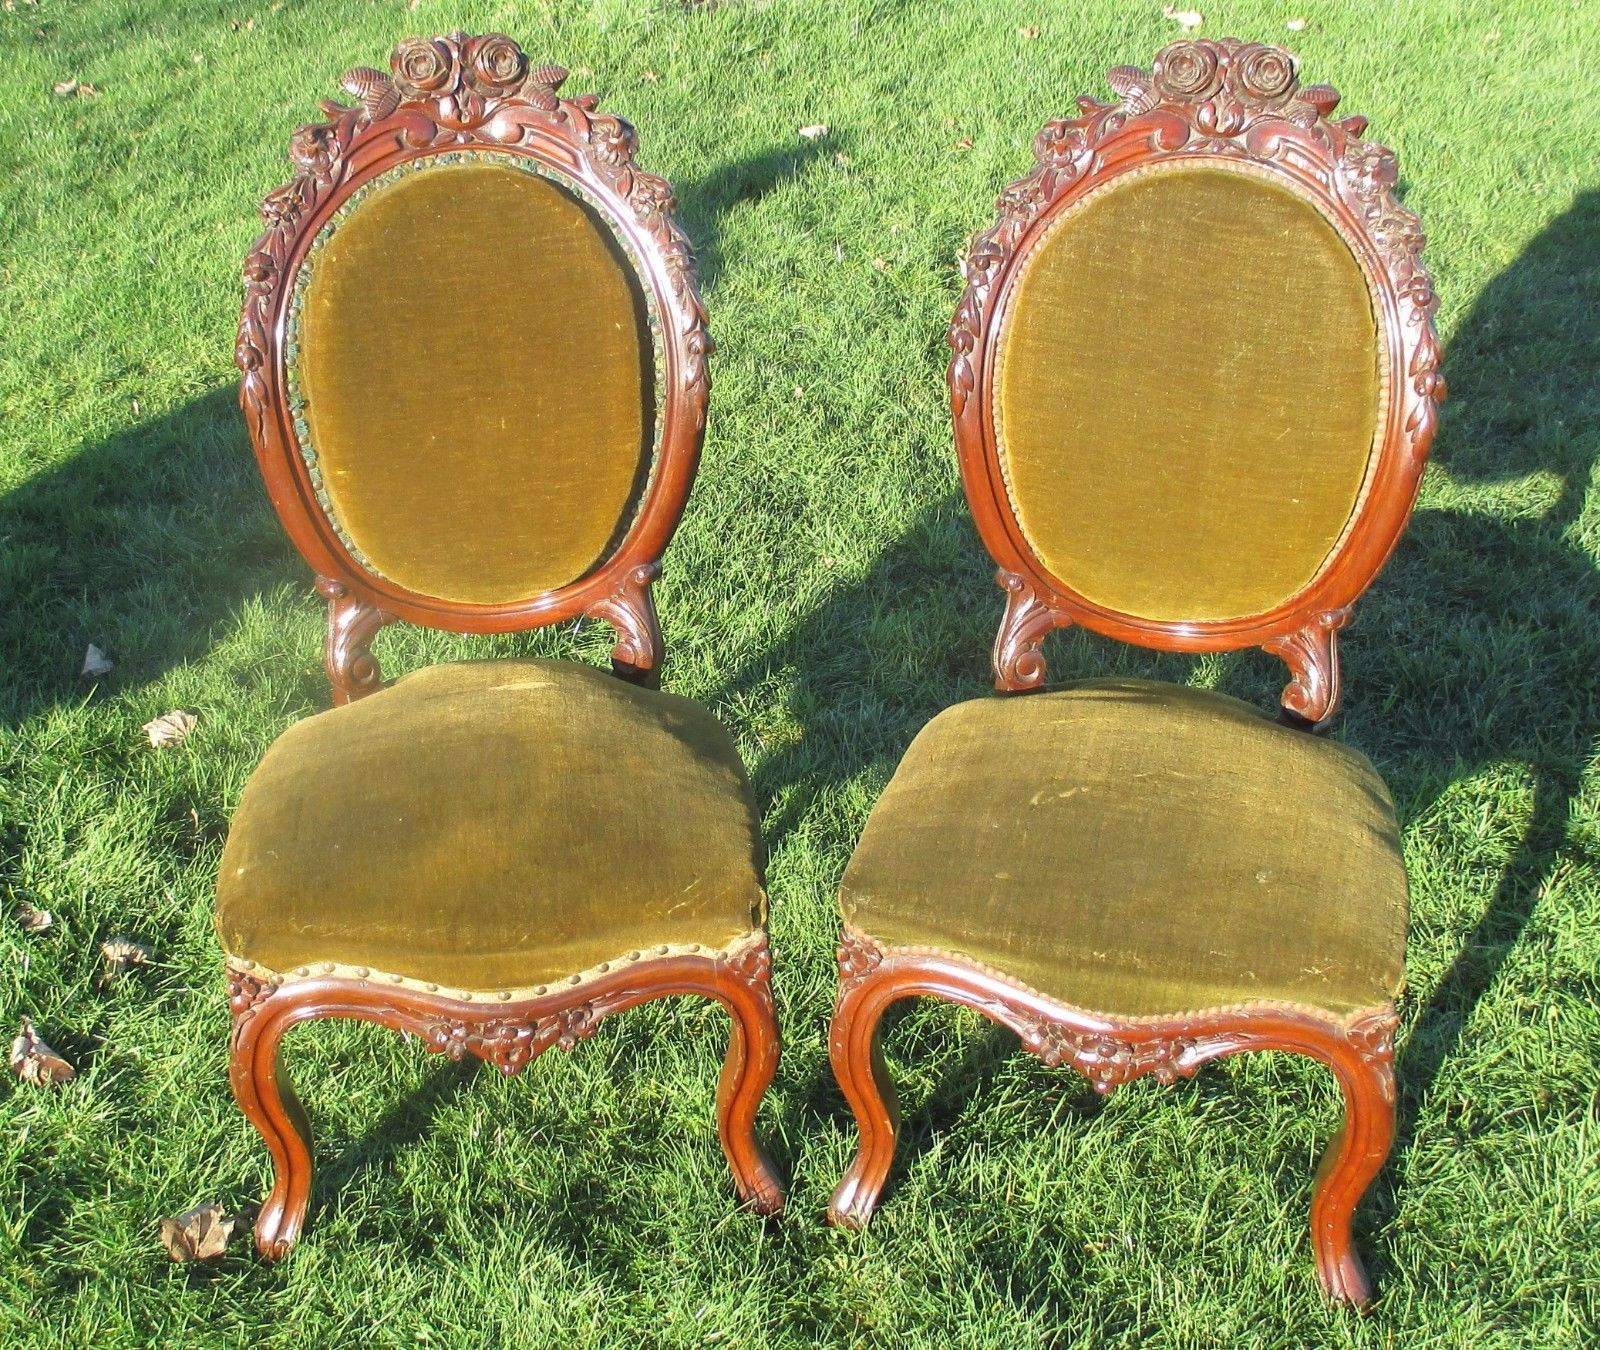 2 Antique Hand Carved Wood Parlour Chairs Hobnails Louis XV Style 19th Century | eBay